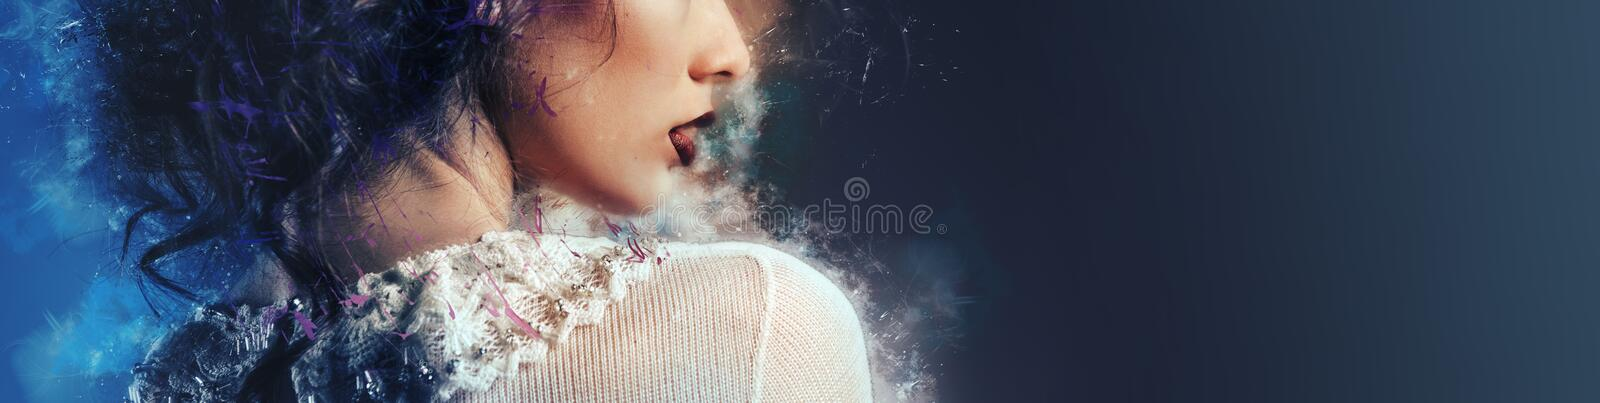 Profile cropped image part of gorgeous young woman face bright make-up lipstick image with digital art effects, horizontal image royalty free stock photos